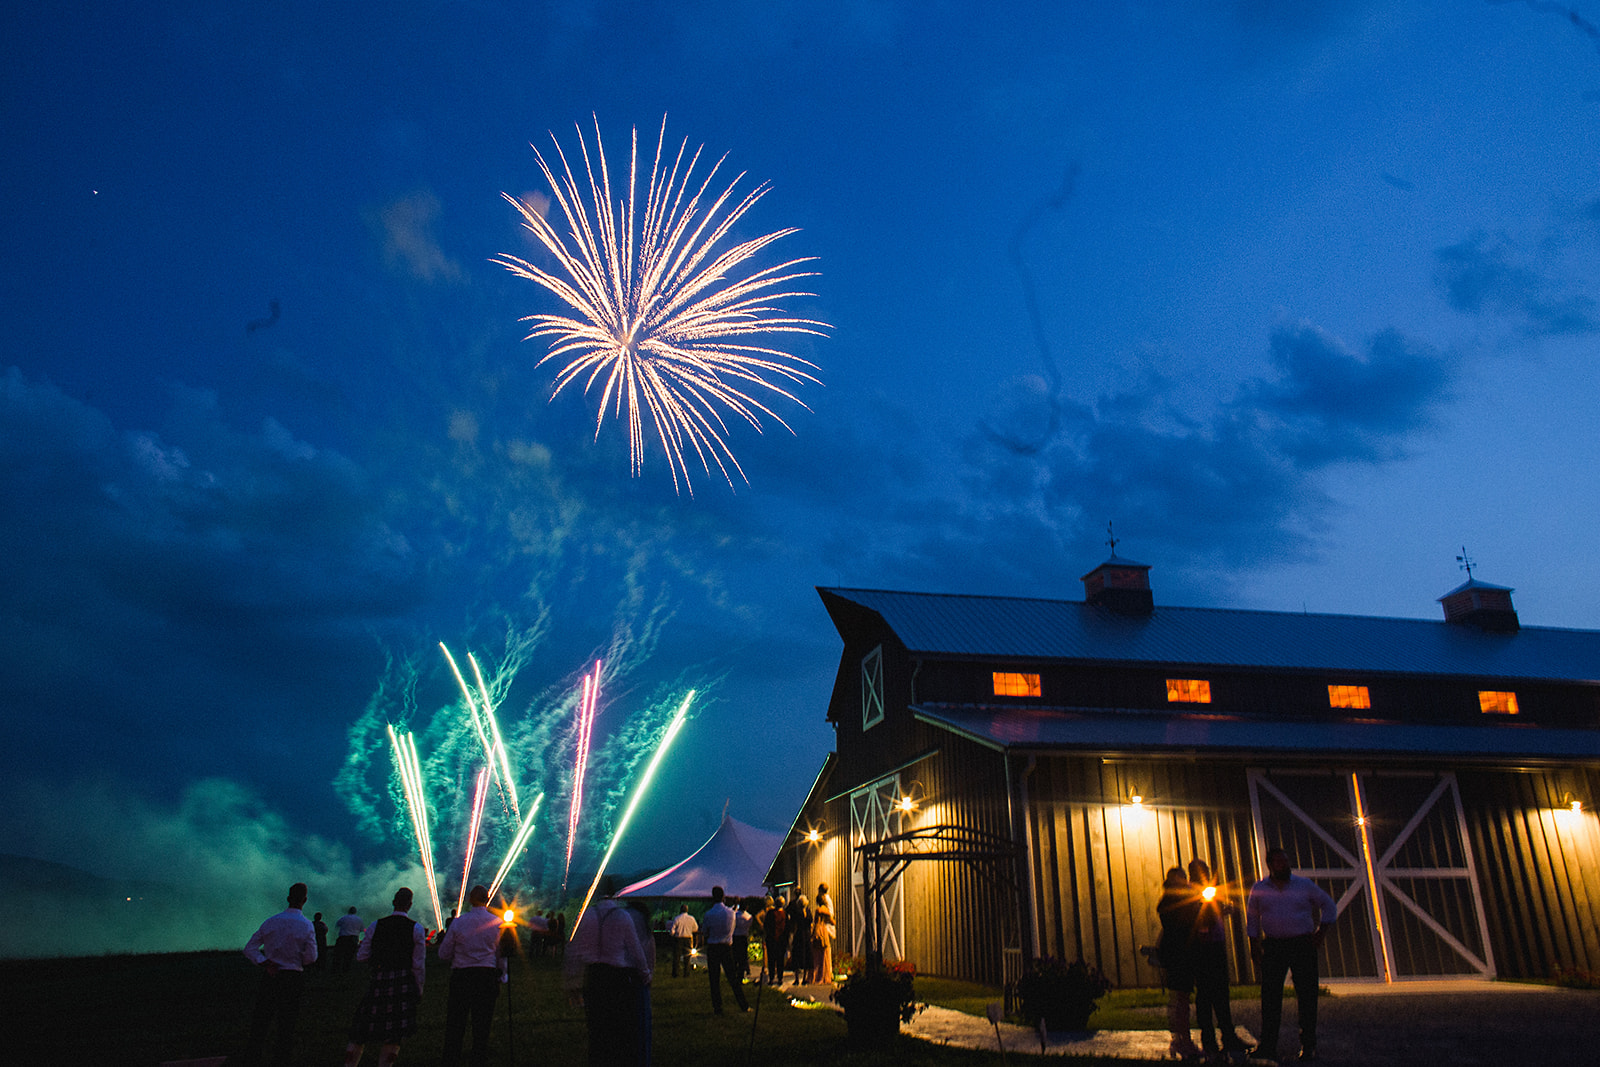 wedding-fireworks-Santore-Adirondacks